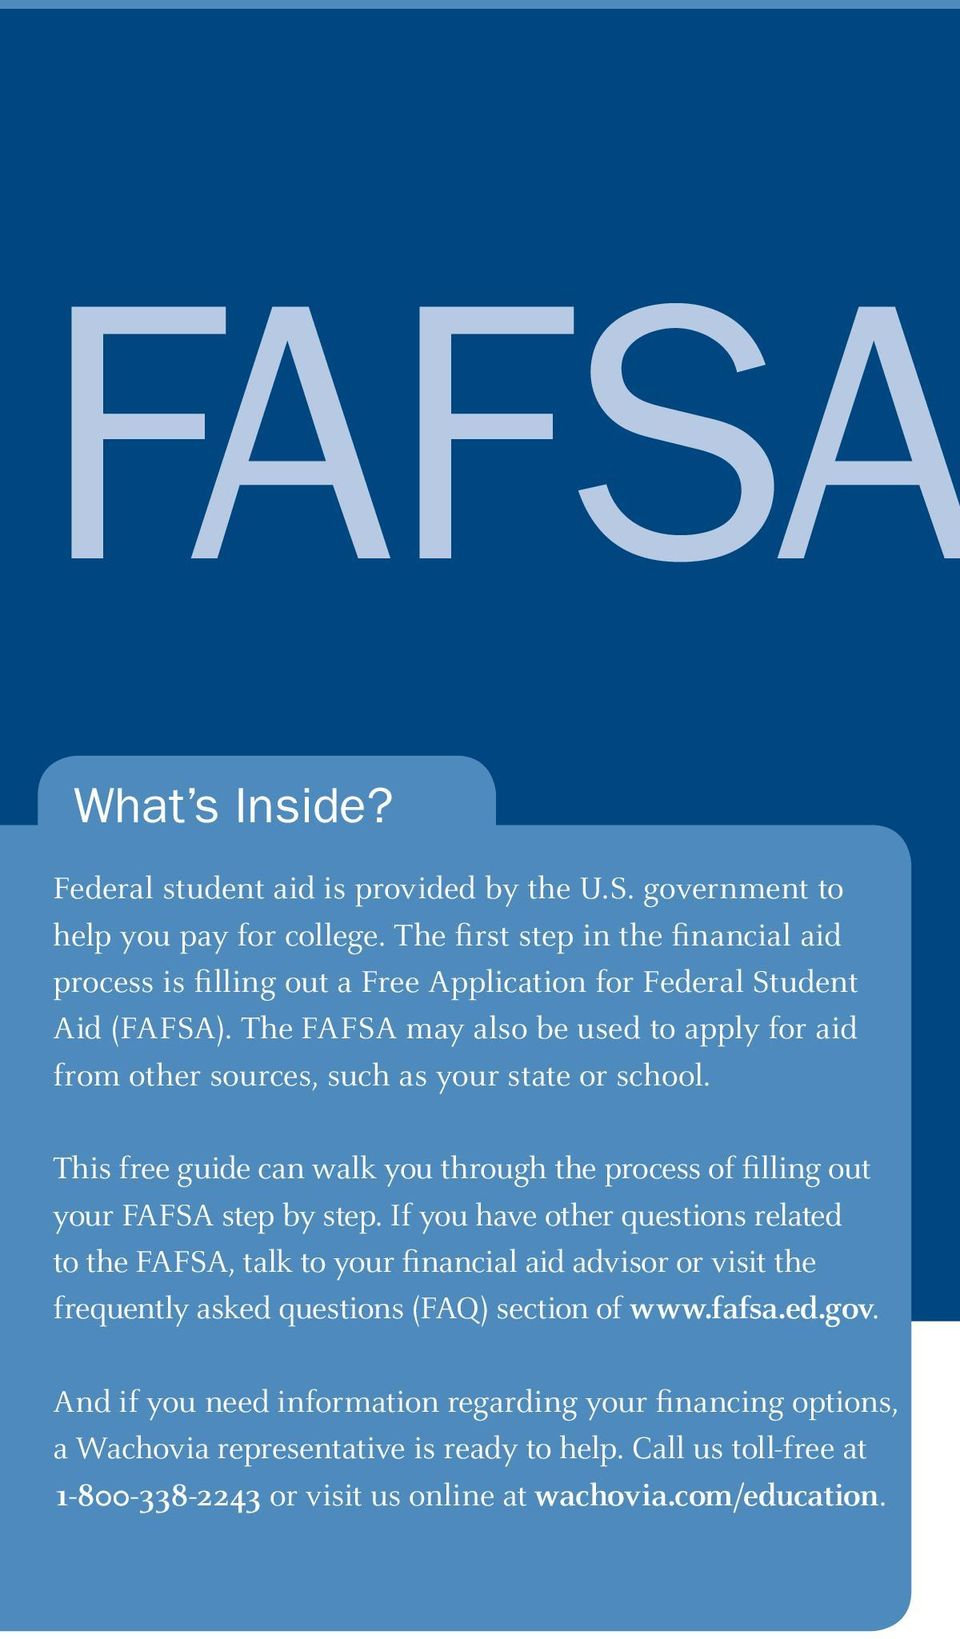 The FAFSA may also be used to apply for aid from other sources, such as your state or school. This free guide can walk you through the process of filling out your FAFSA step by step.